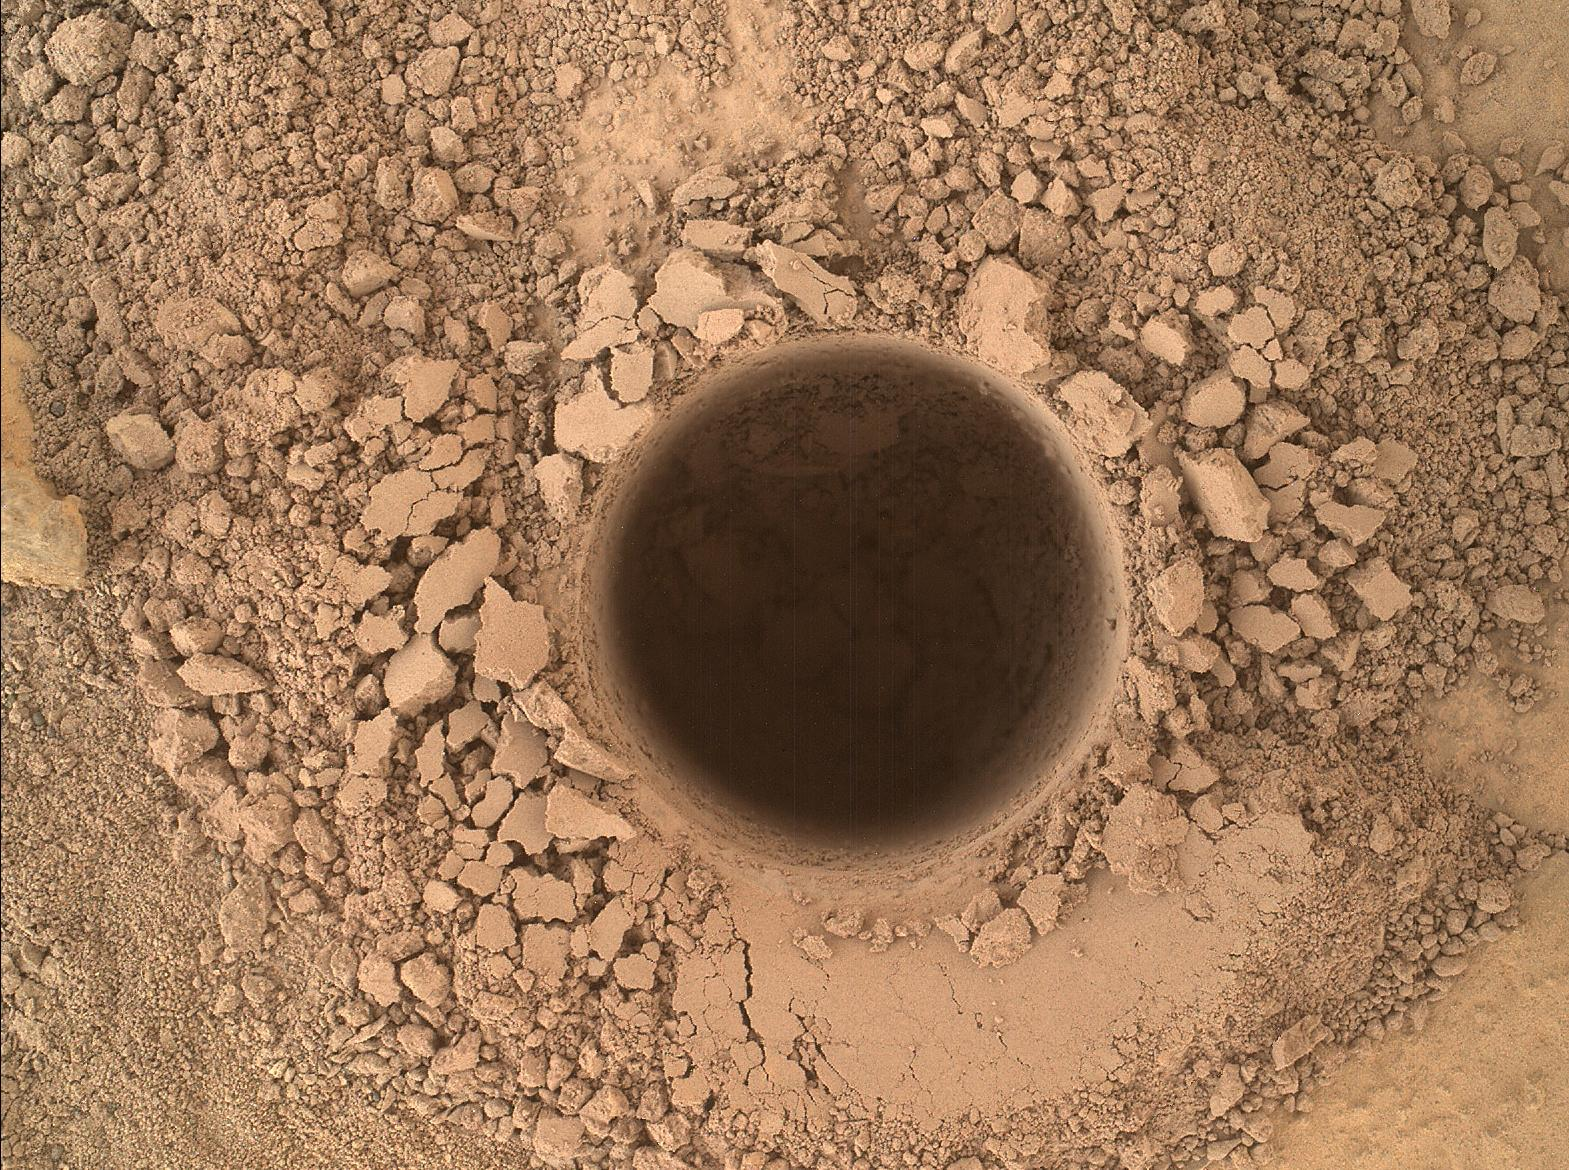 Mars Rover Curiosity Drills 1st Hole into Huge Martian Mountain